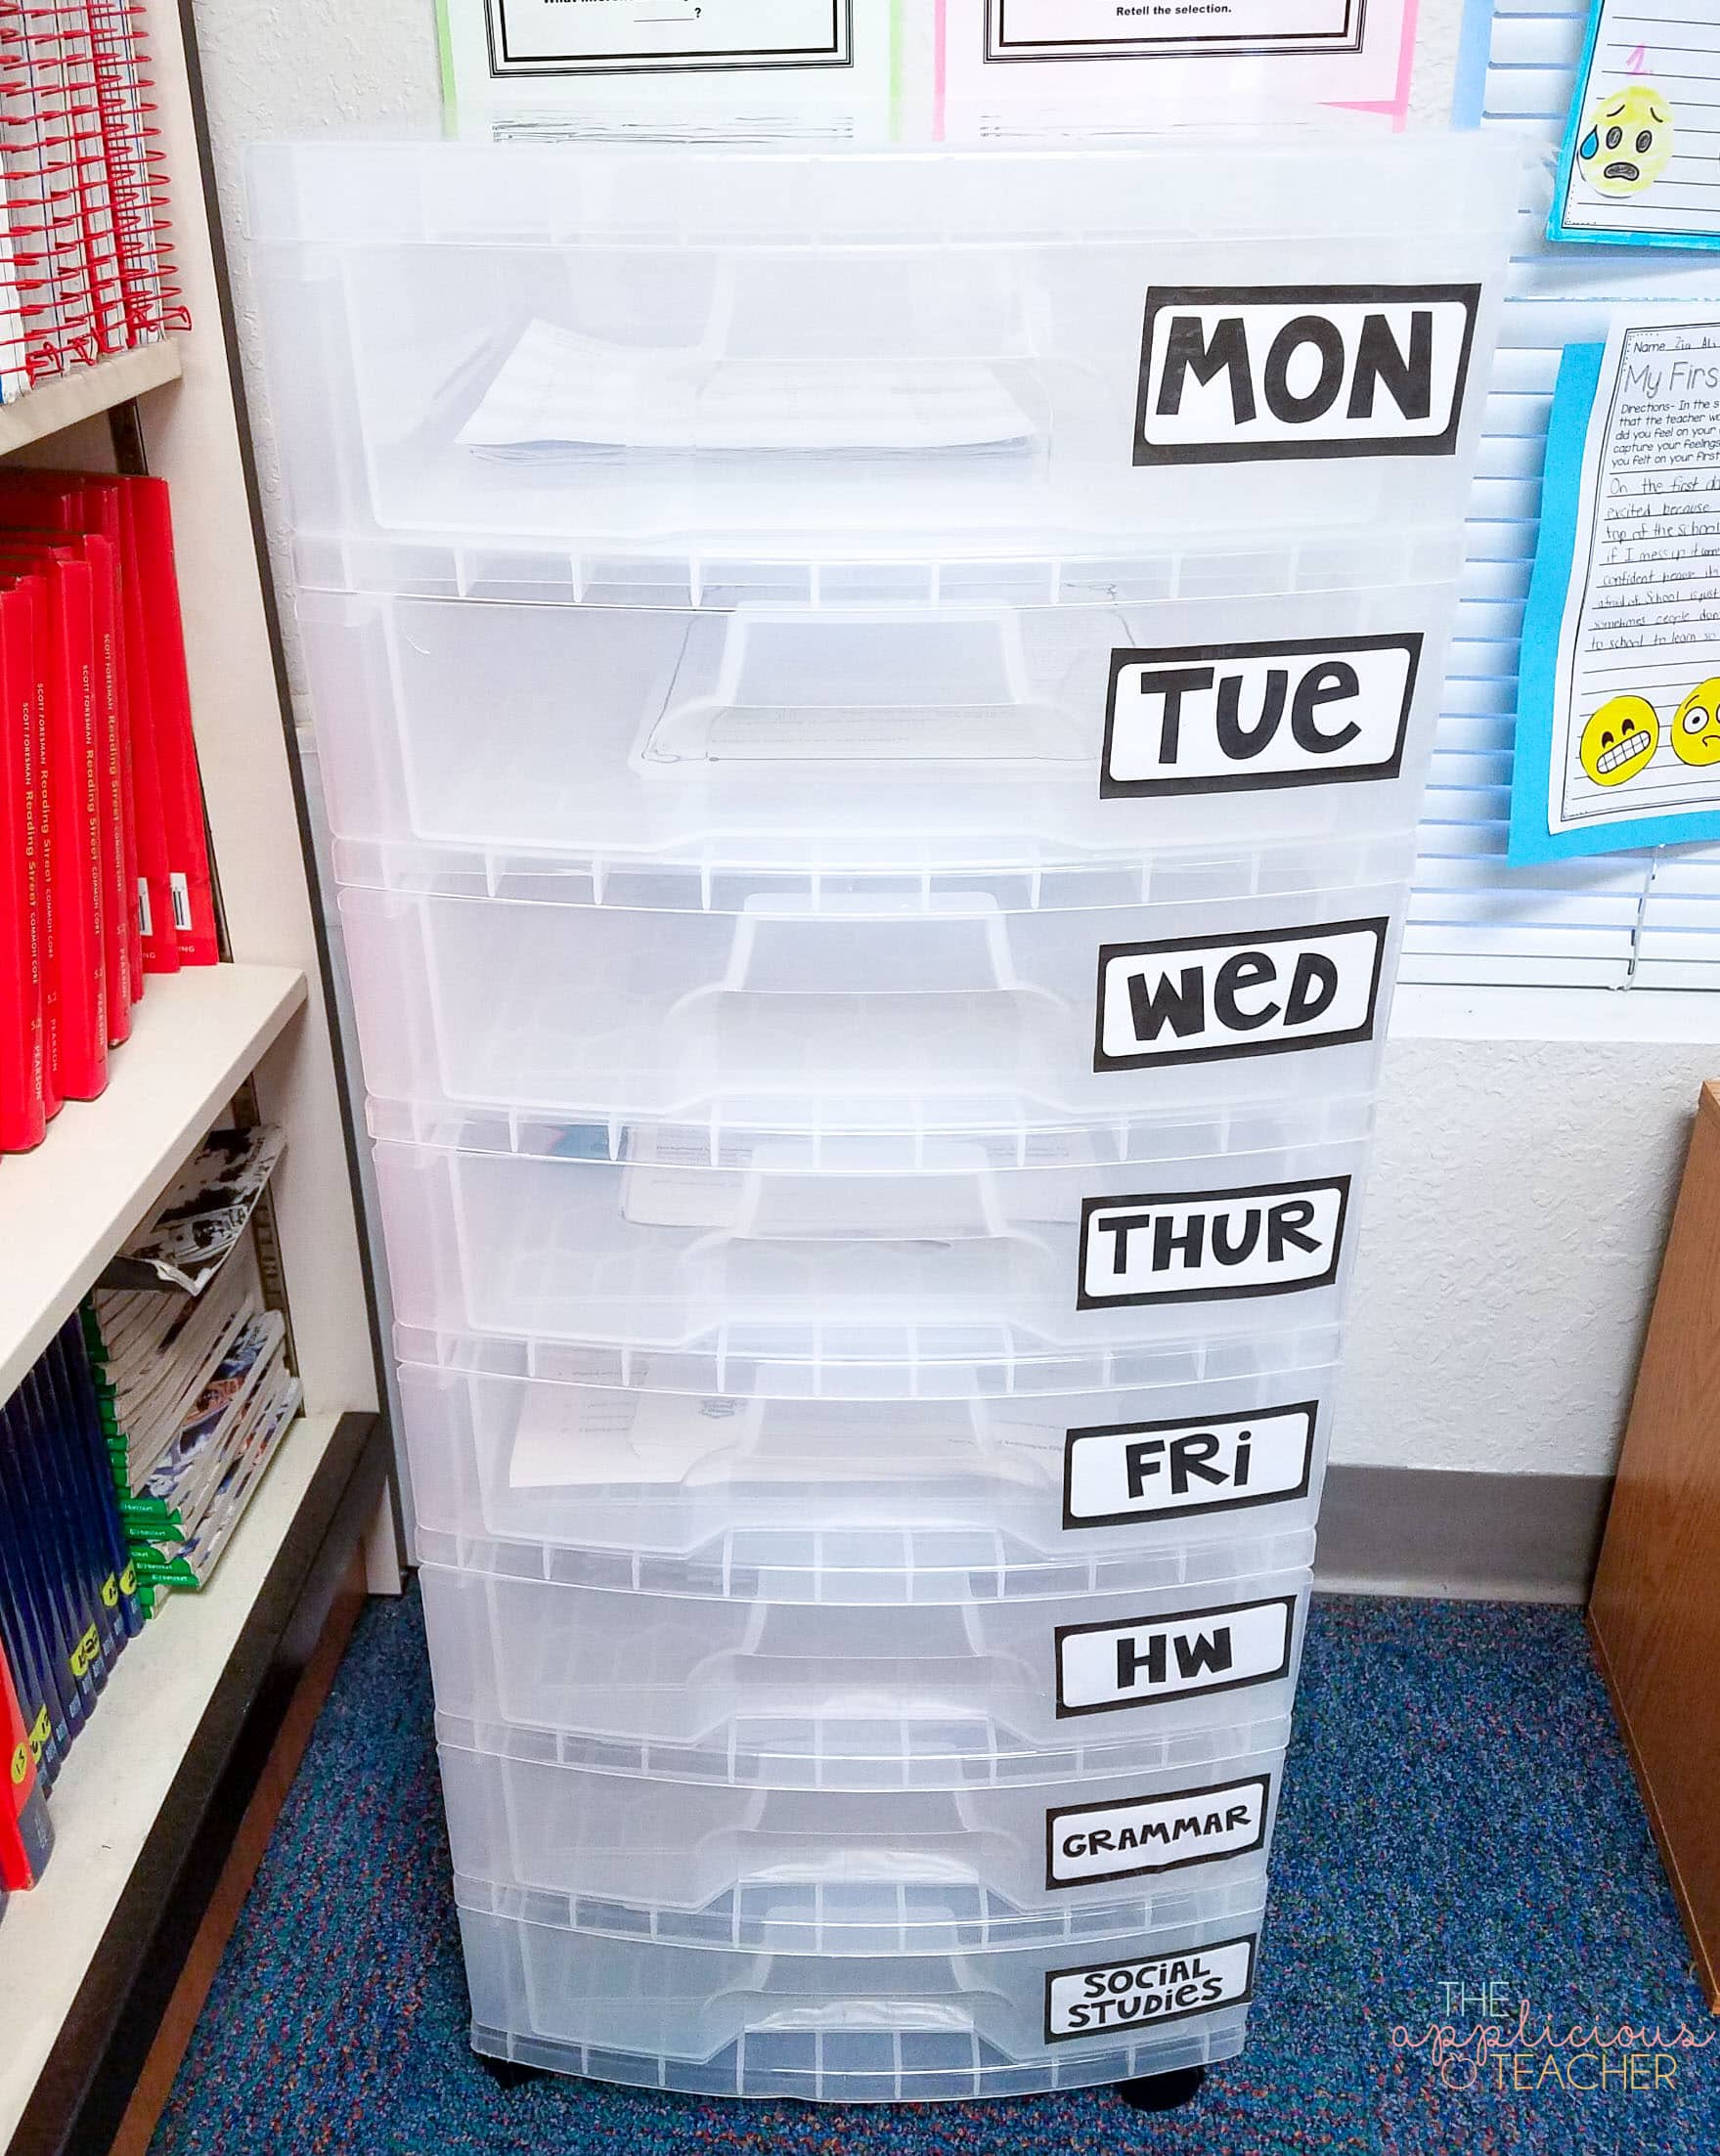 Weekly storage drawers help keep your materials for the week organized and ready when you are